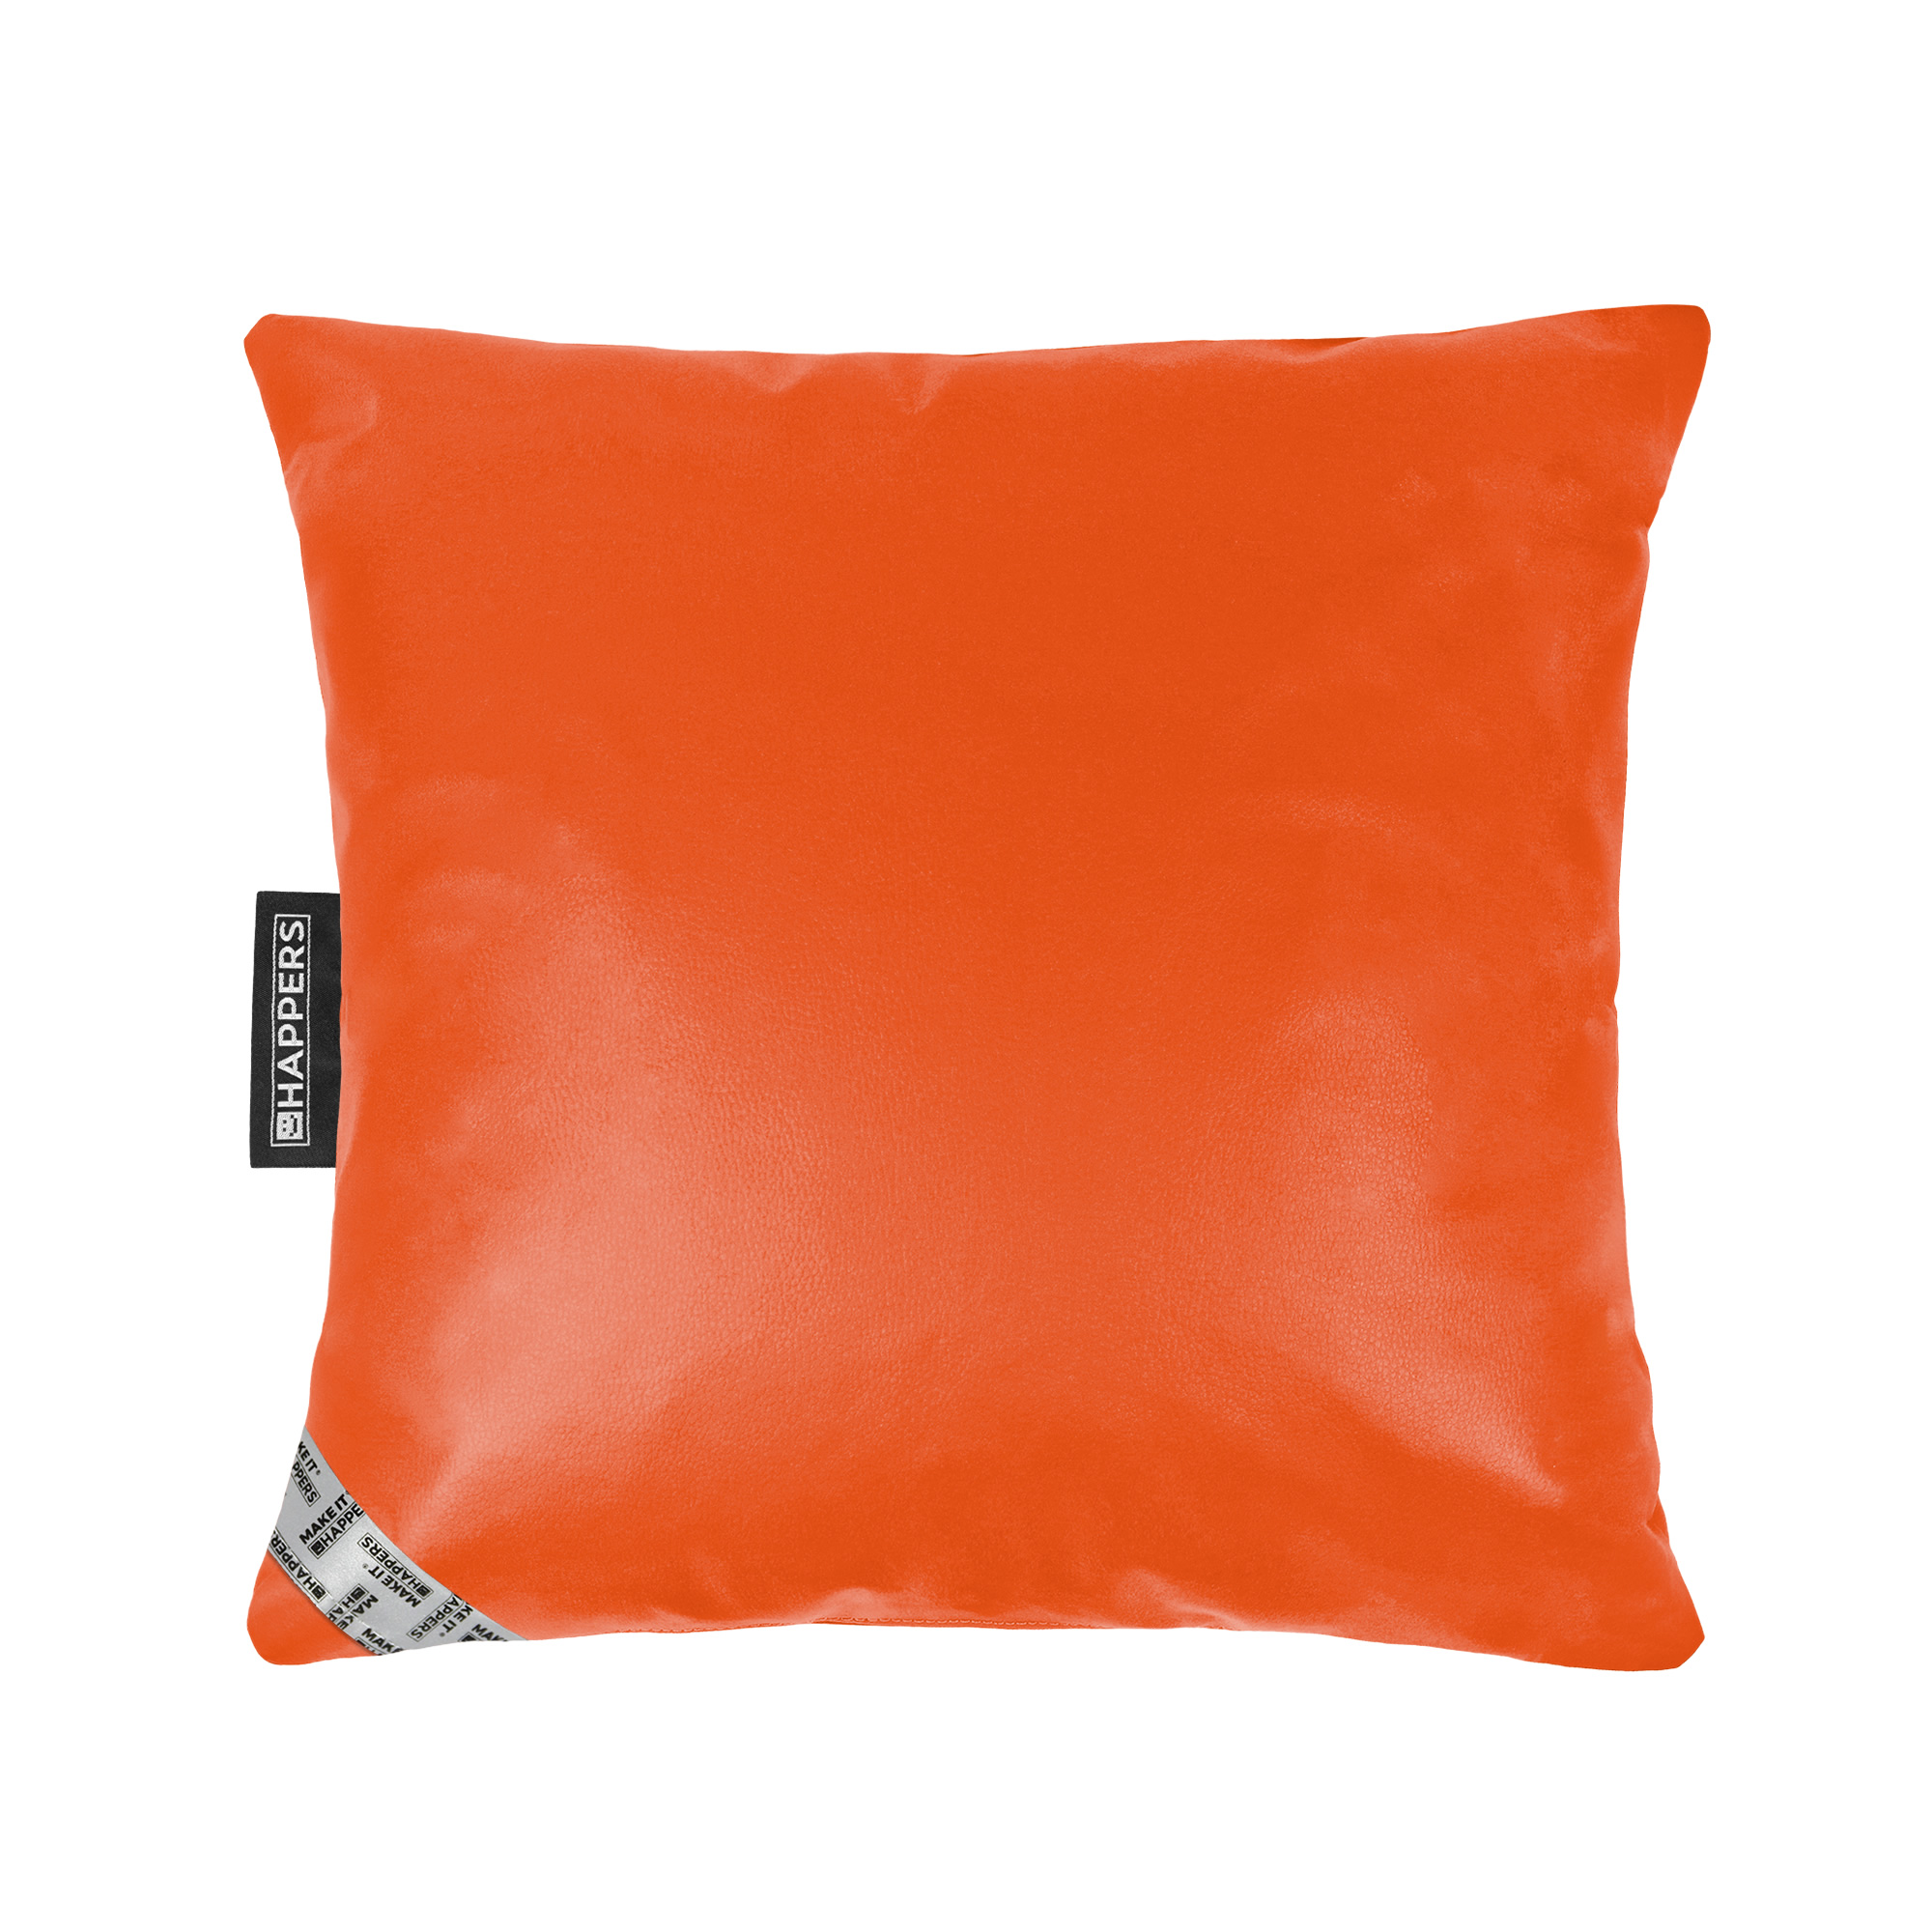 Cojín 45x45 Polipiel Indoor Naranja Happers | Happers.es